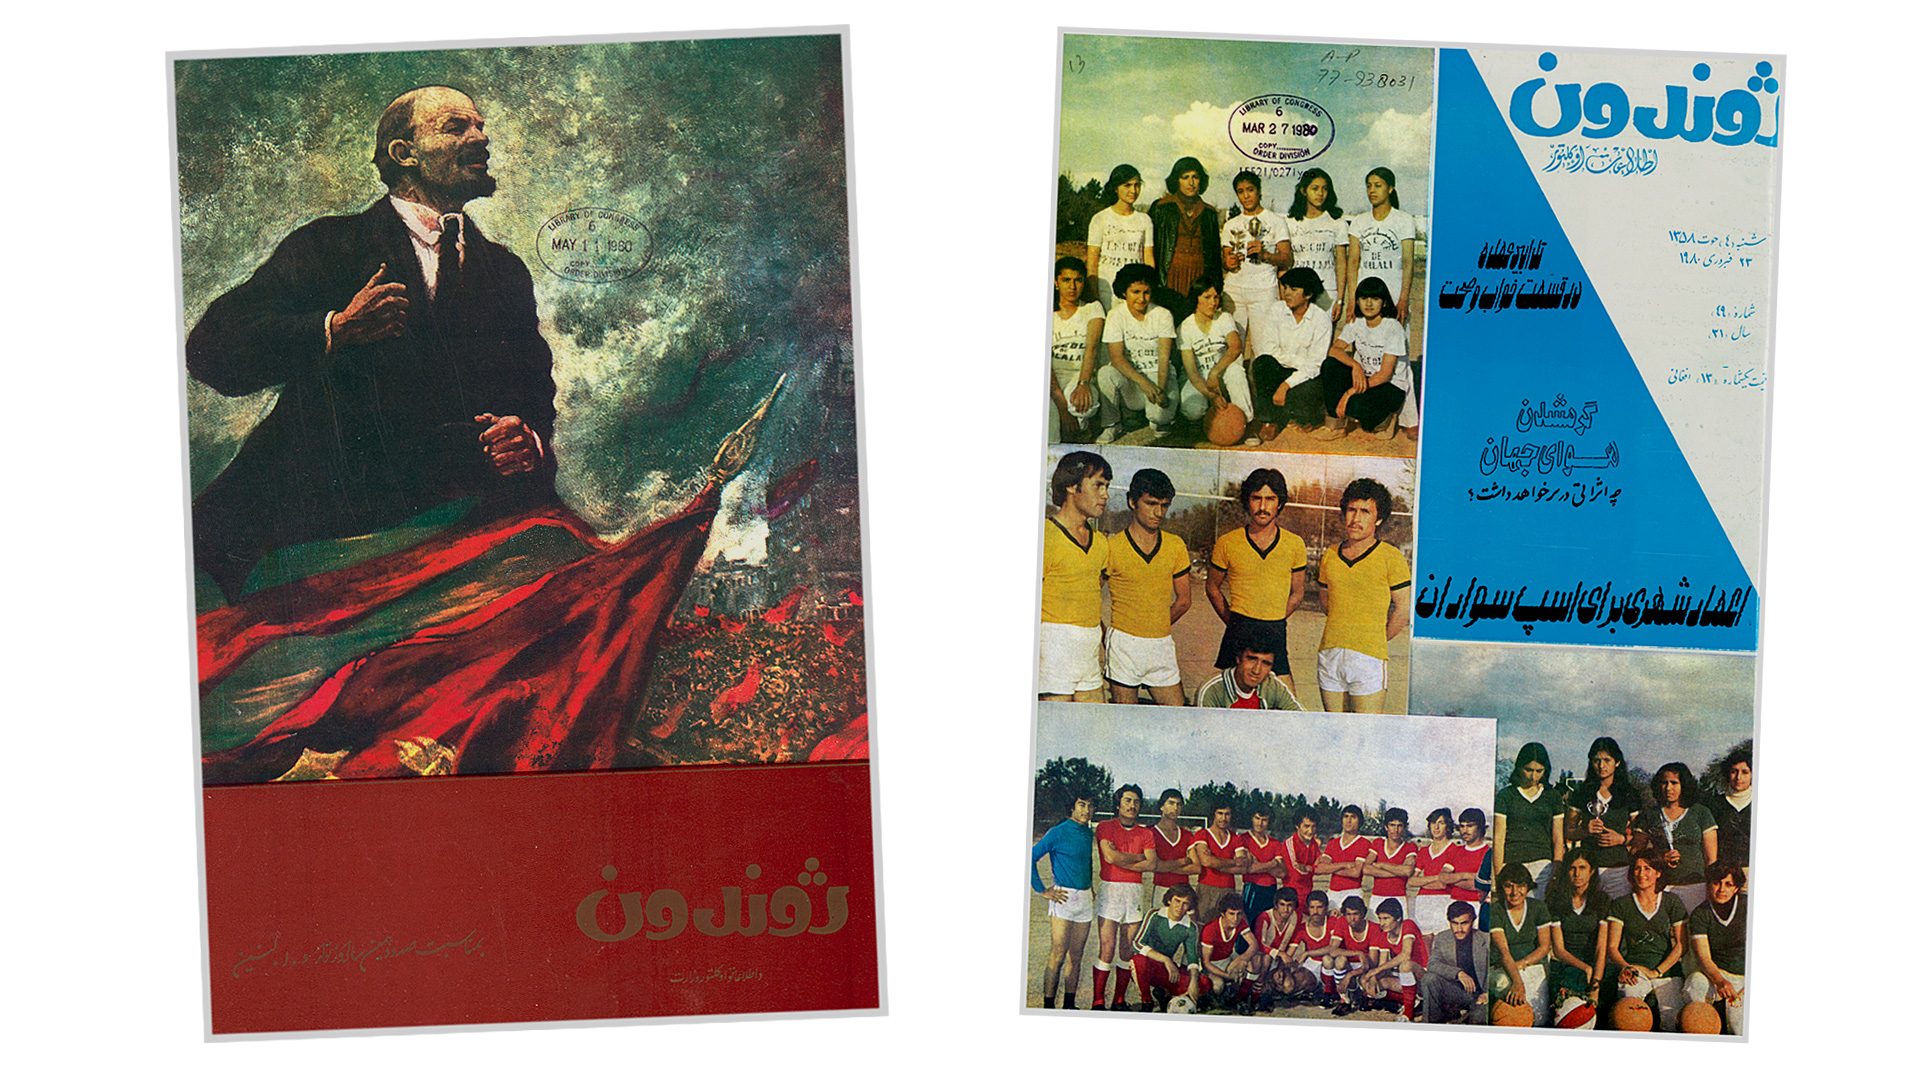 Pages from Afghan magazine Zhvandun - Lenin and sport front covers